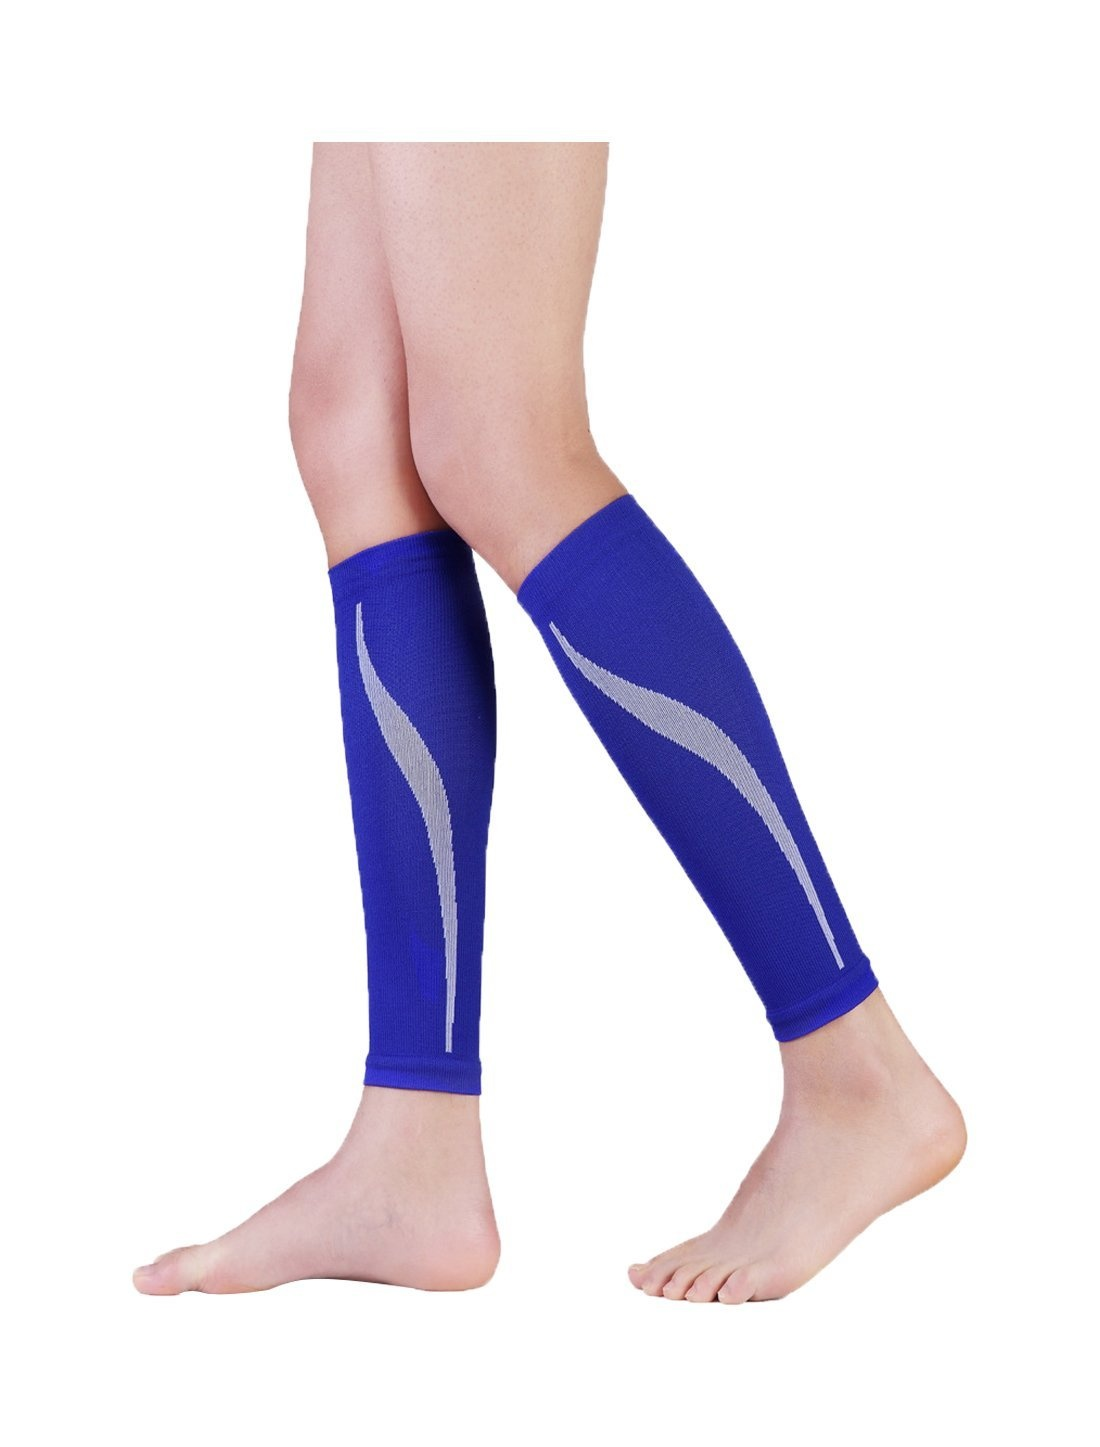 sourcingmap-Unisex-Footless-Novelty-Prints-Compression-Socks-1-Pack-One-Size-B